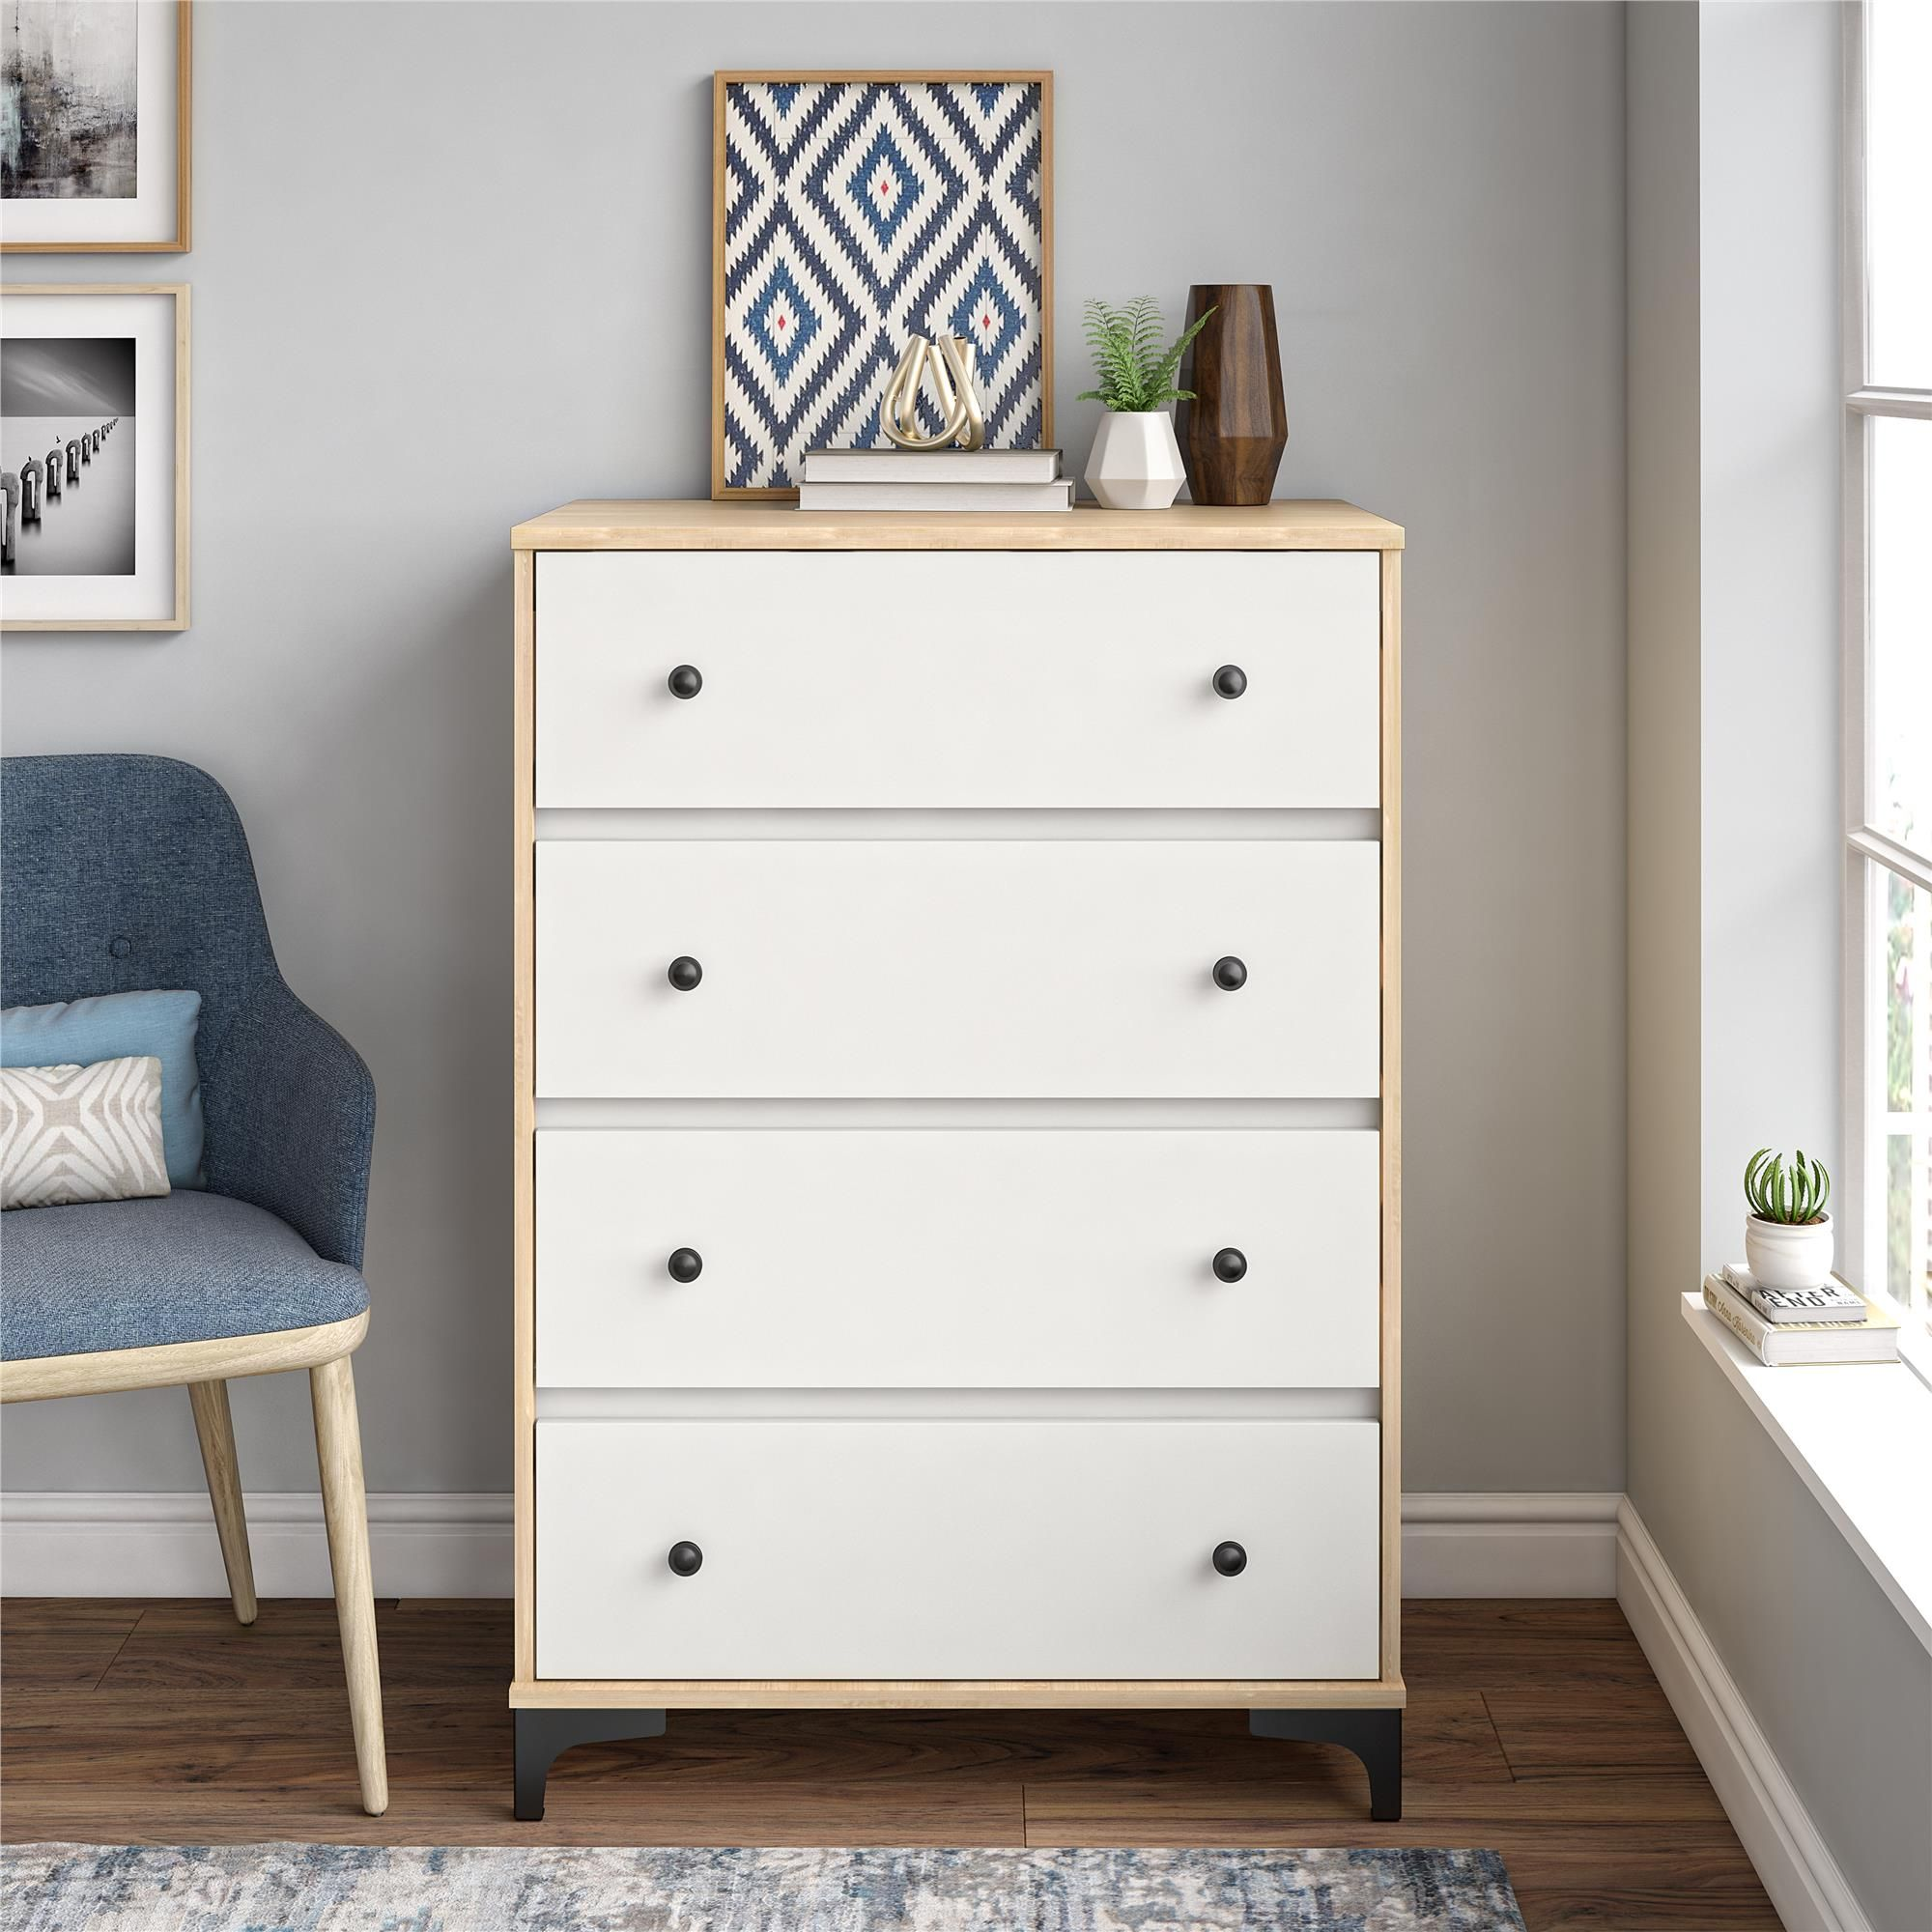 Your Zone Reese Two Tone 4 Drawer Dresser White Walmart Com 4 Drawer Dresser Dresser Drawers Furniture [ 2000 x 2000 Pixel ]